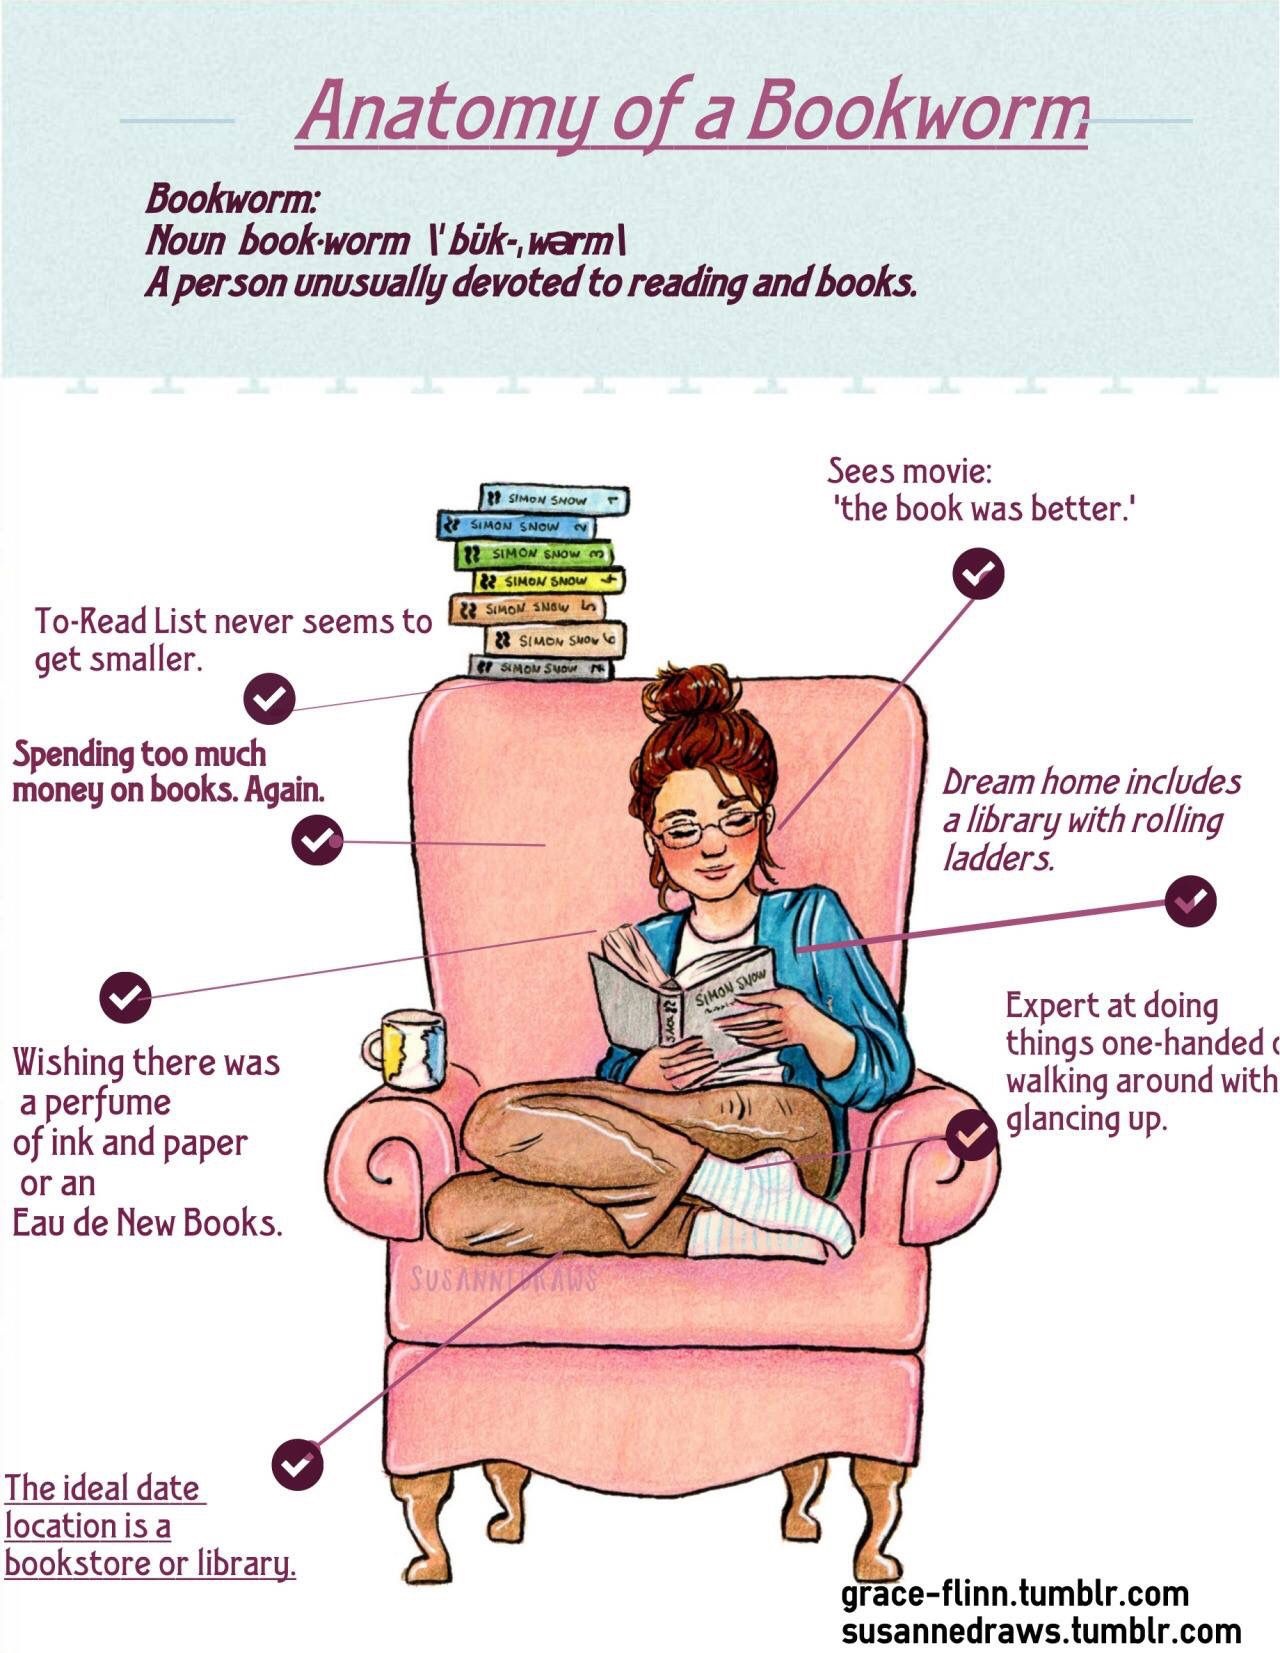 Anatomy of a Bookworm | Book Talk | Pinterest | Anatomy, Books and ...